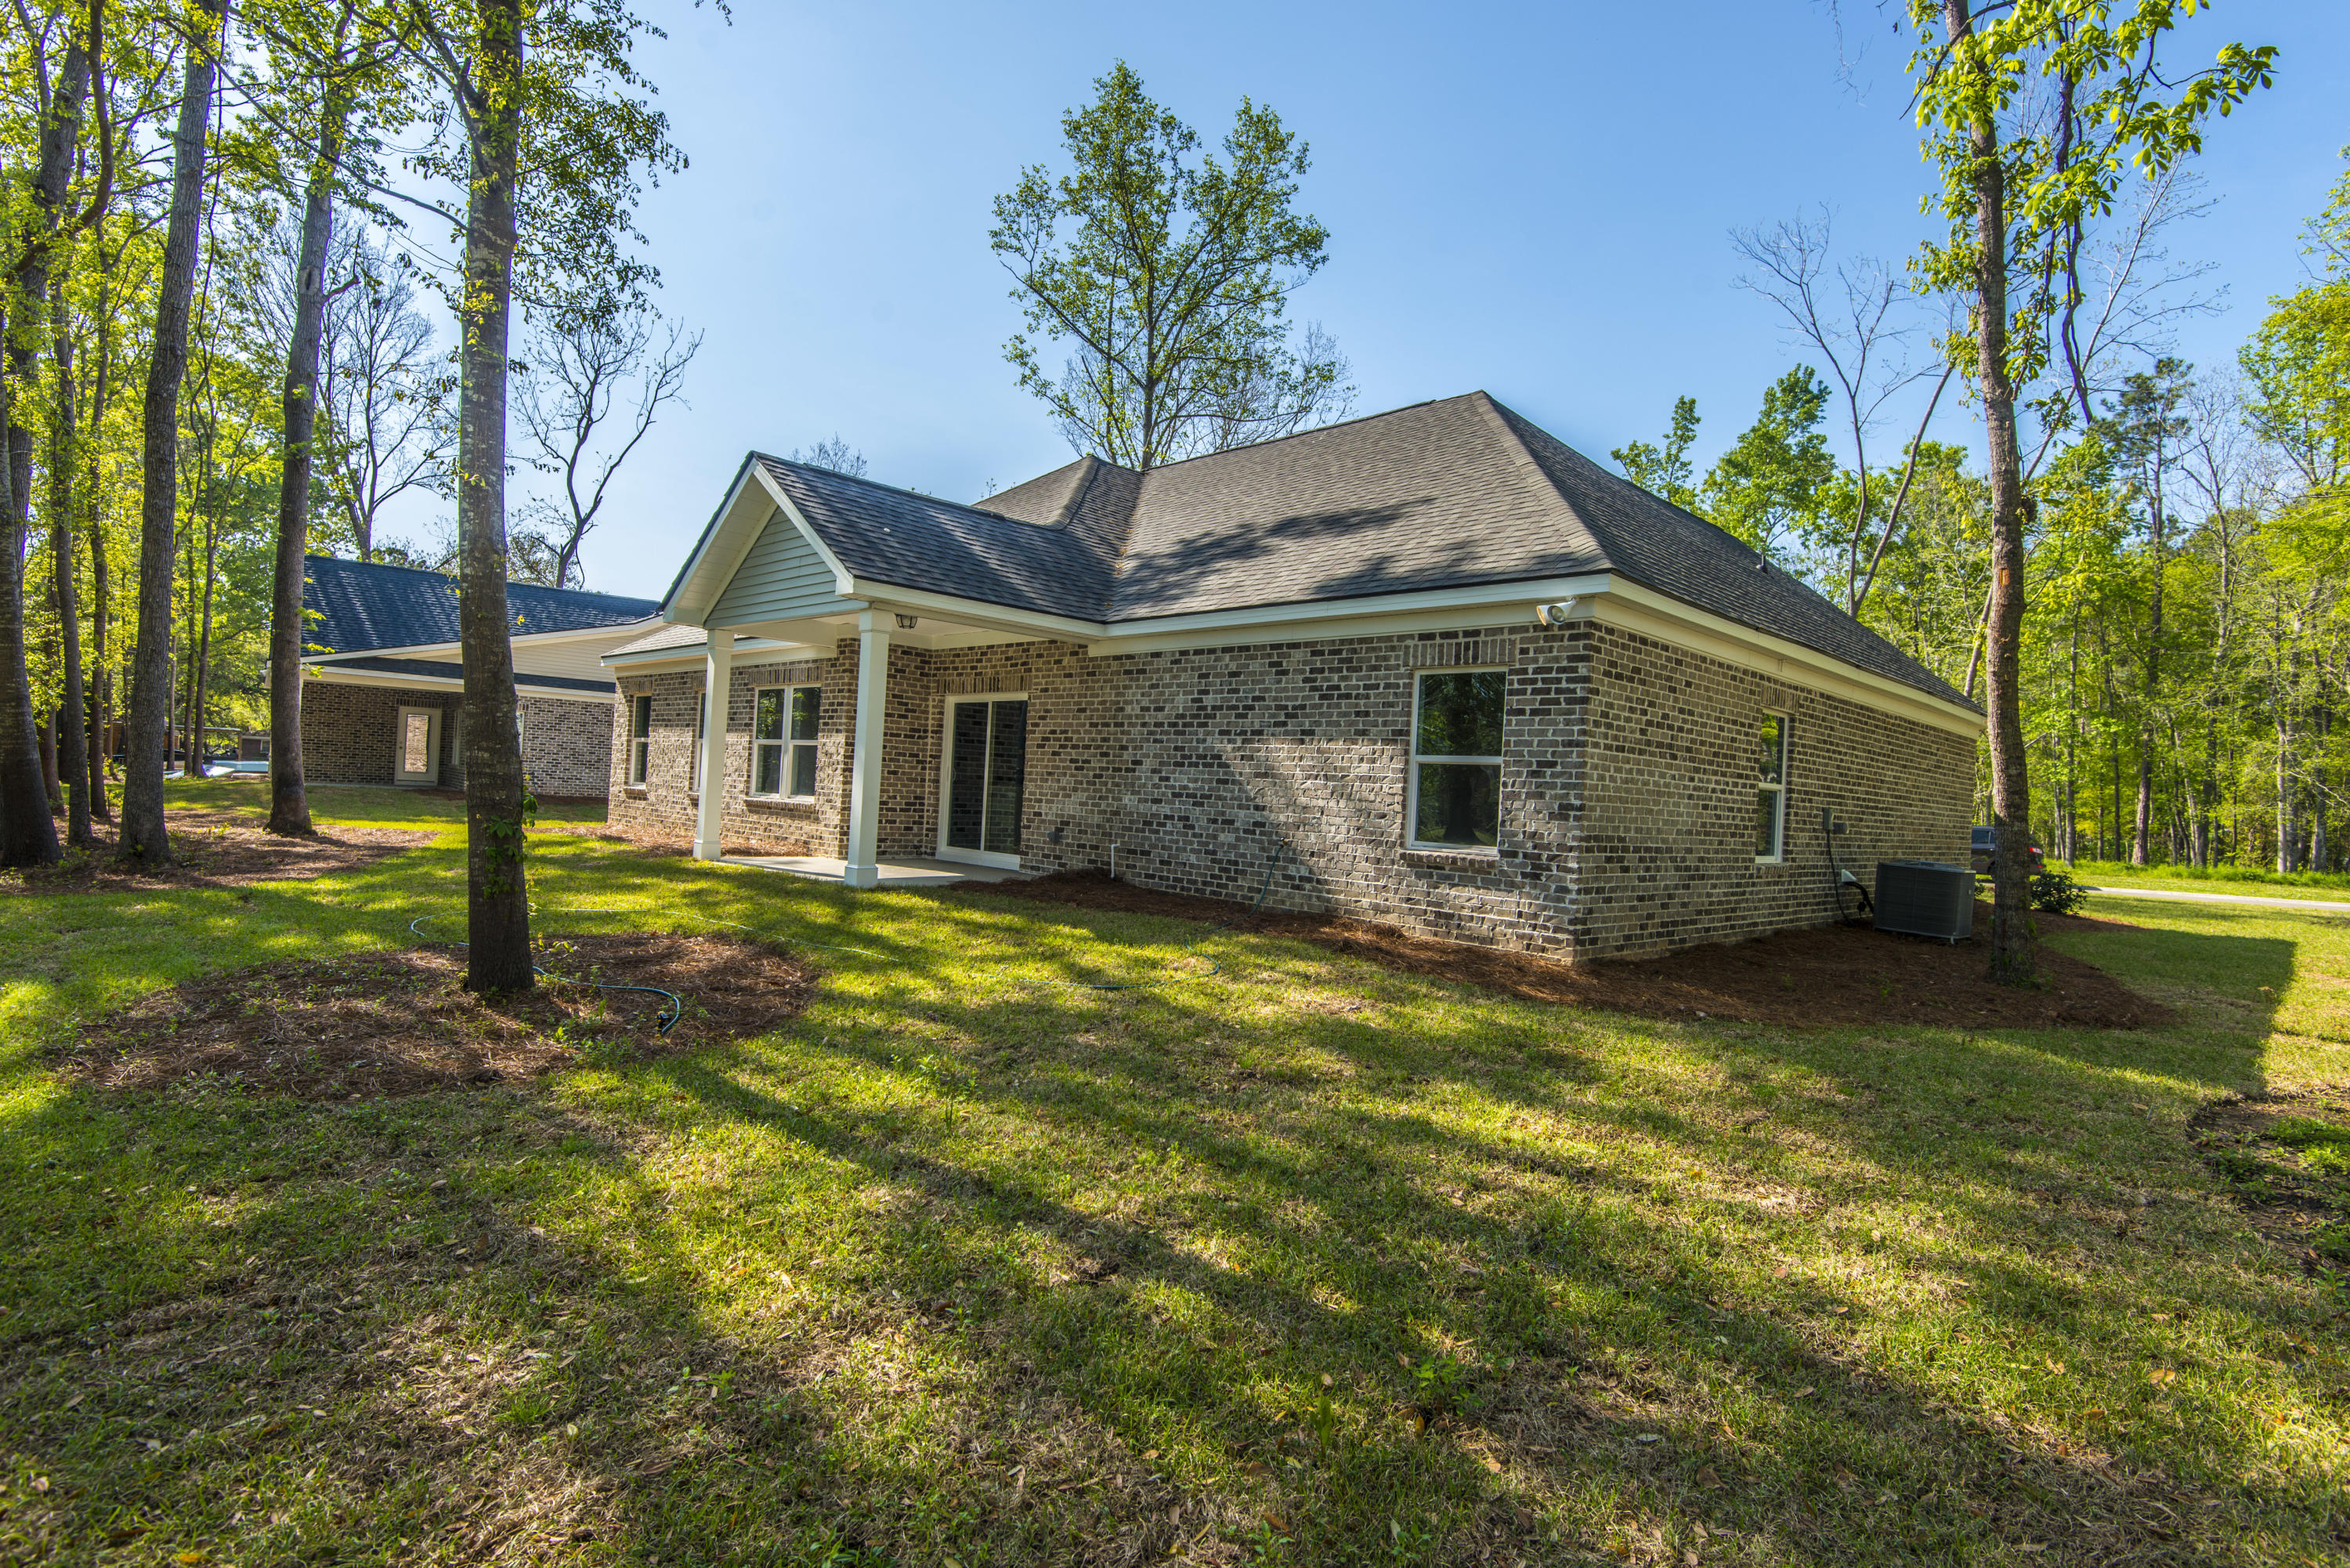 Photo of 1010 Baker Dr, Moncks Corner, SC 29461